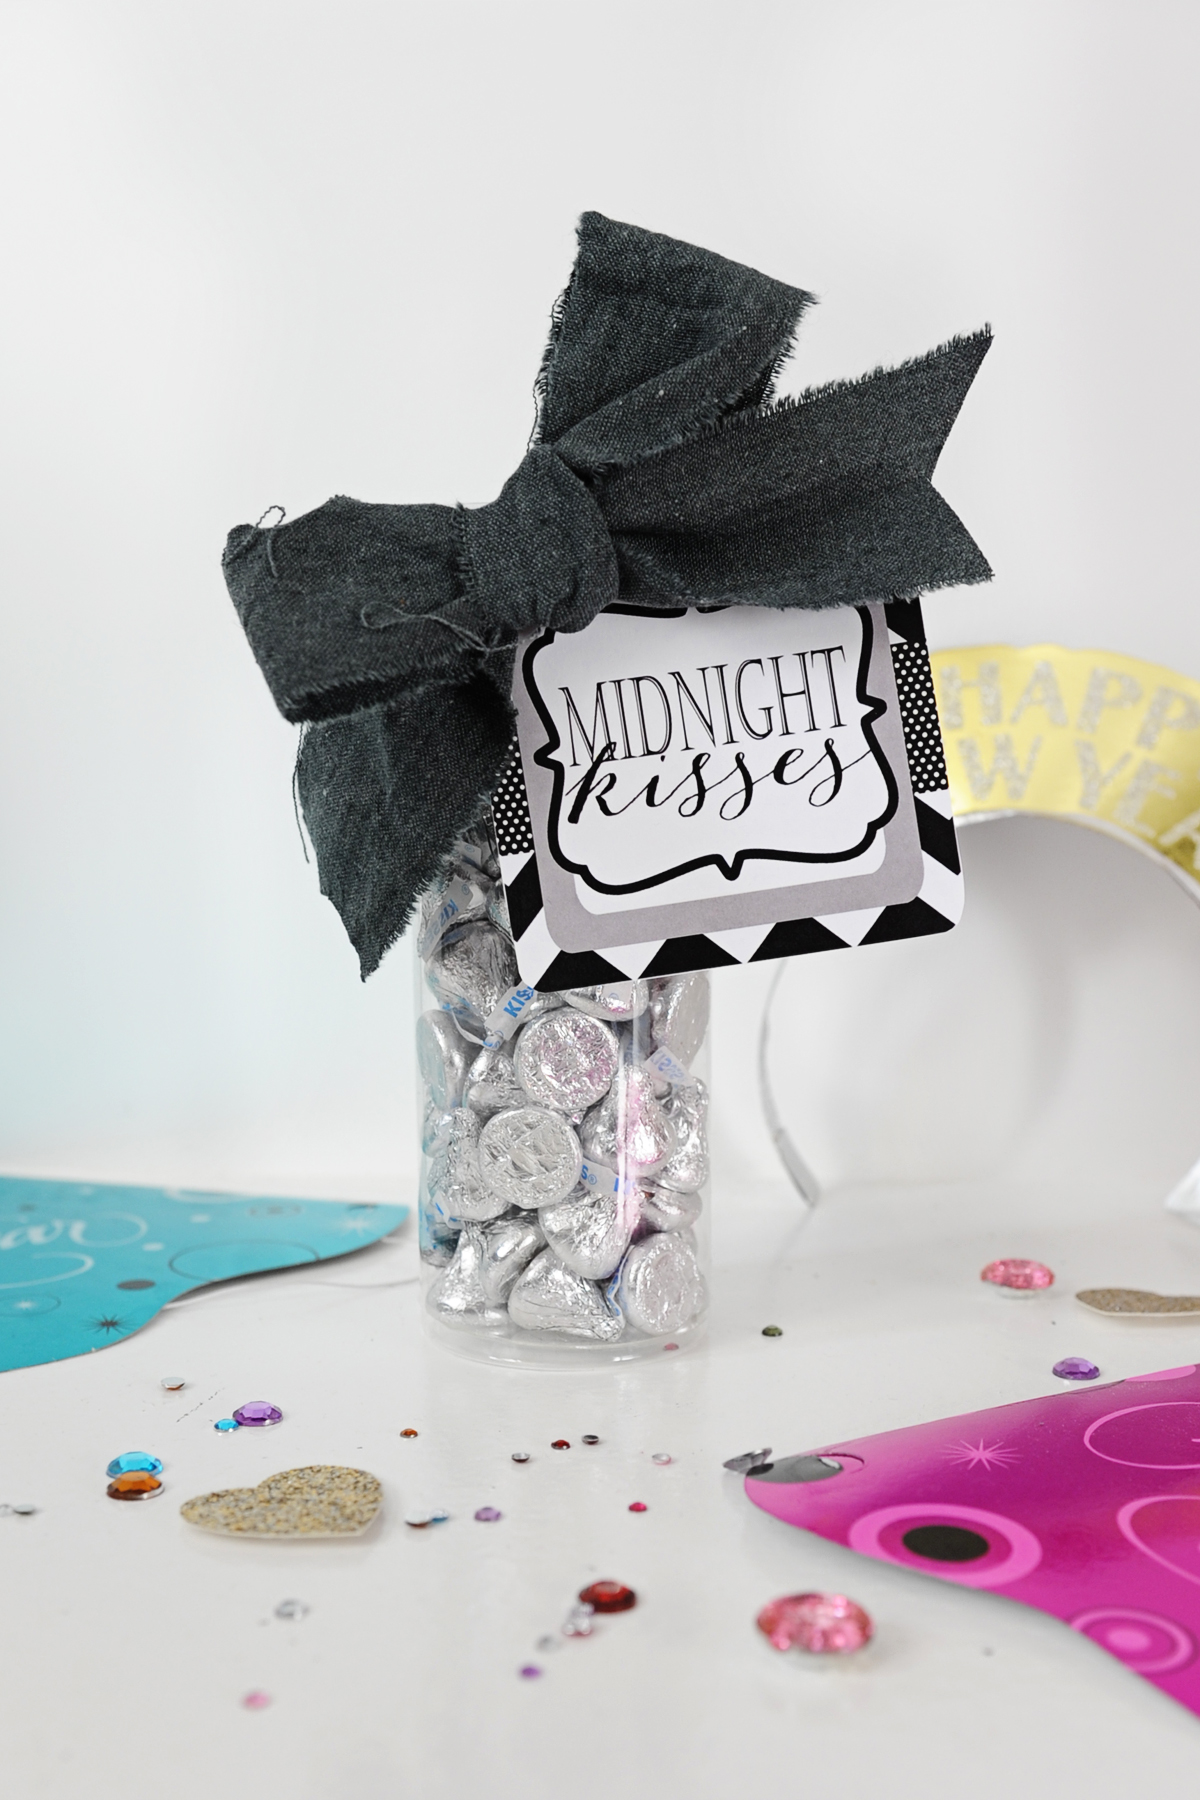 New Year's Eve Midnight Kisses Free Printable Tag and Party Favor Idea